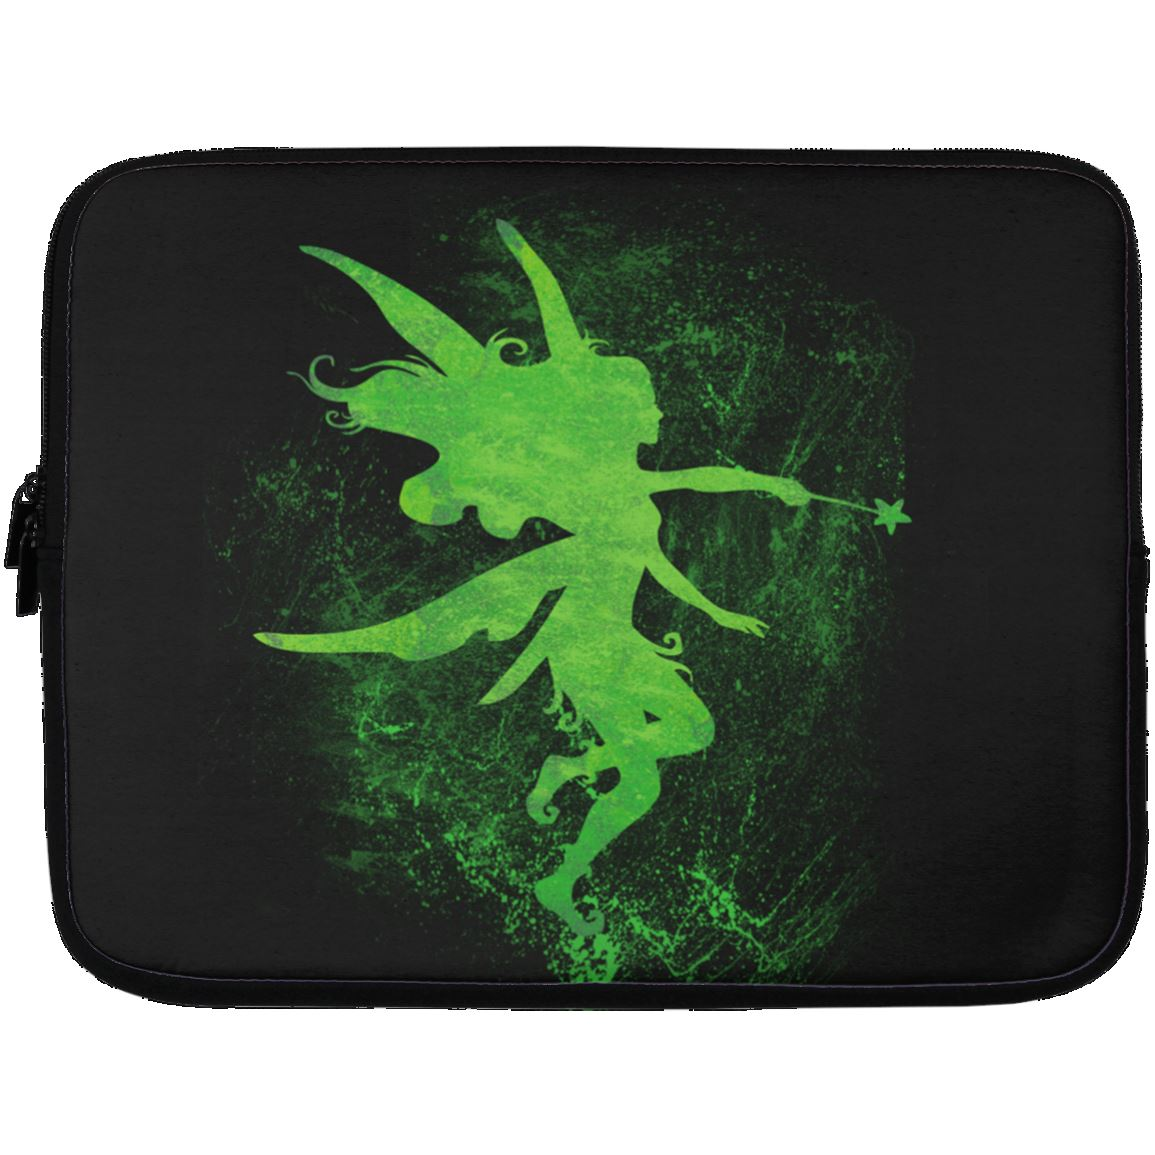 Fairy Art Laptop Sleeve Apparel Laptop Sleeve - 13 inch Black One Size